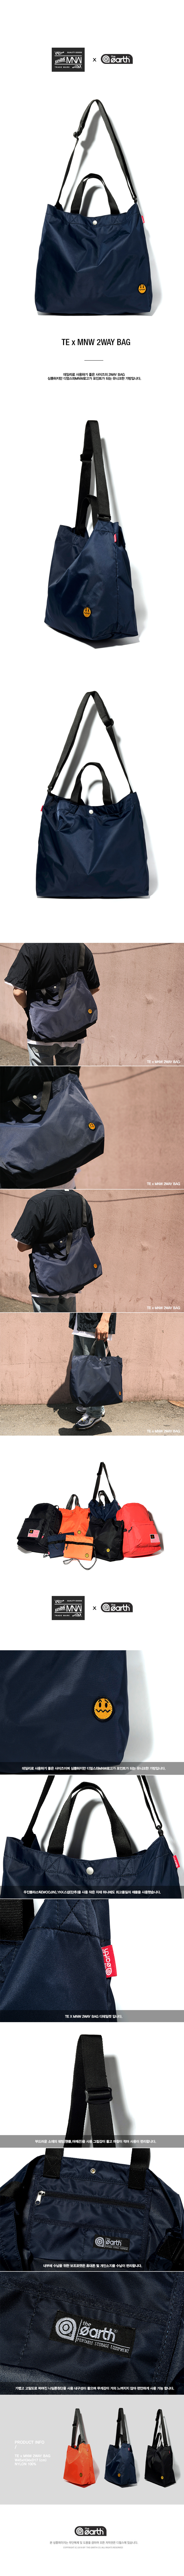 디얼스(THE EARTH) [TE X MNW] 2WAY BAG - NAVY